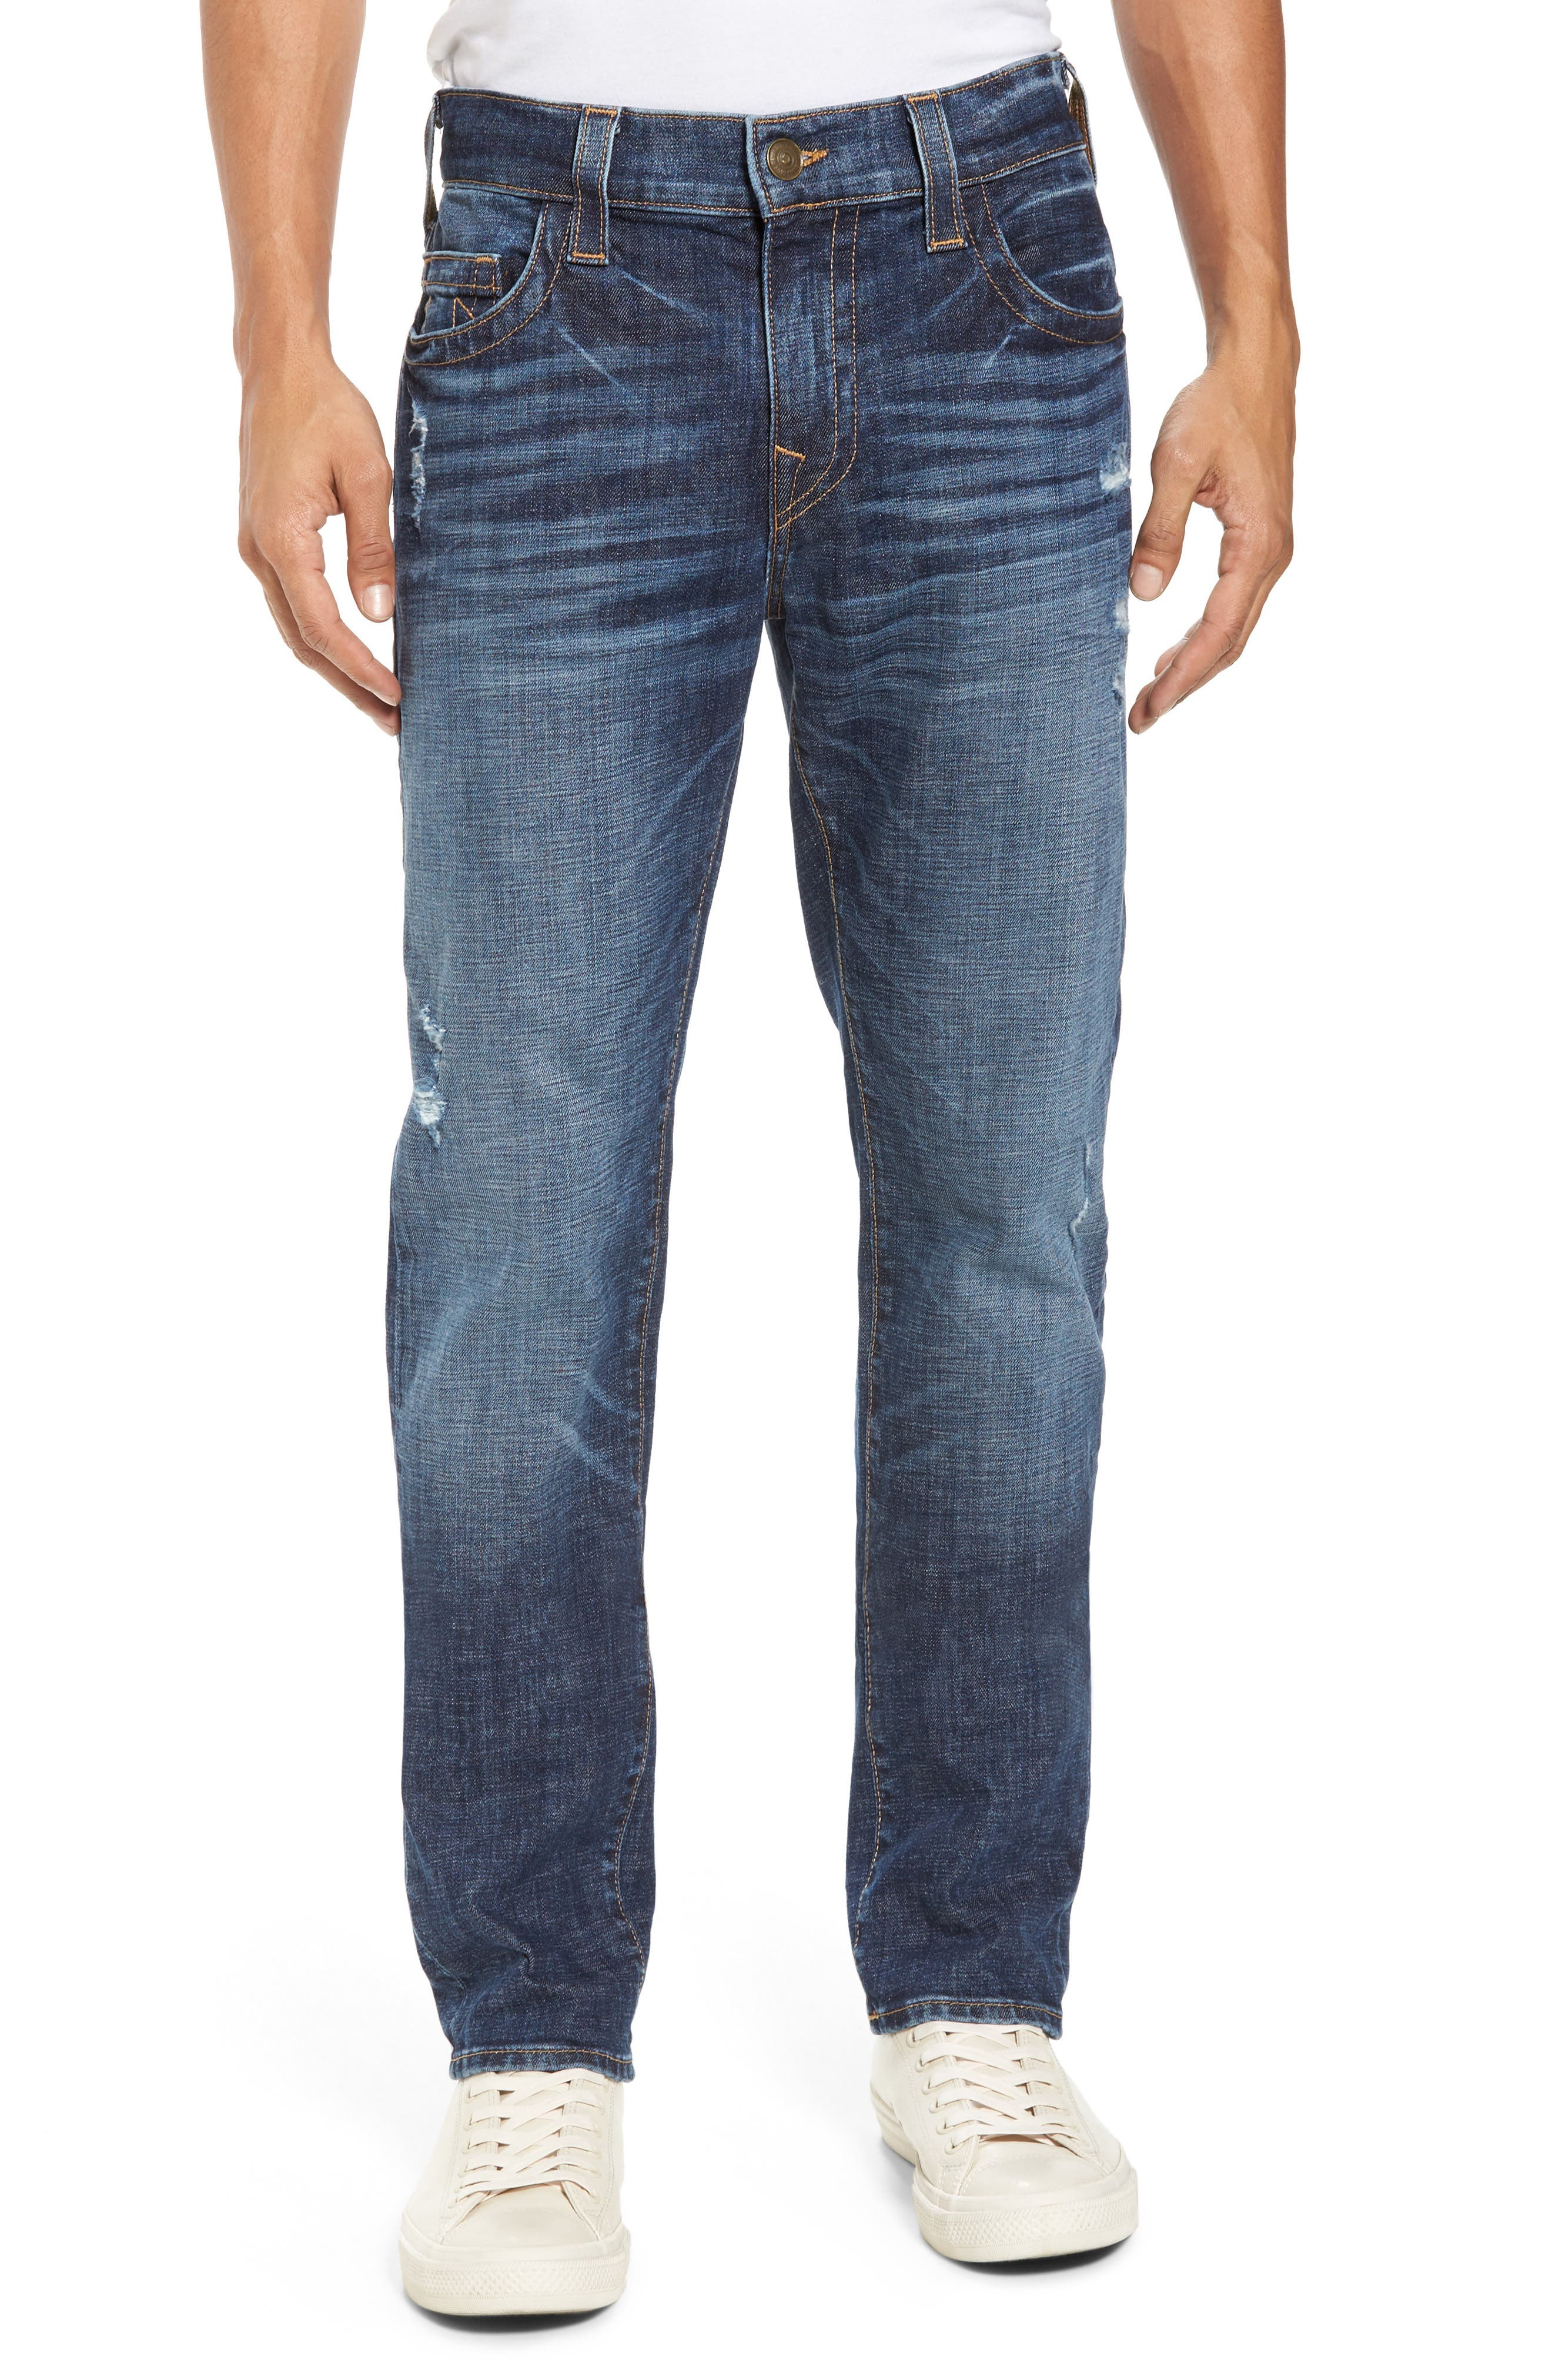 Rocco Skinny Fit Jeans,                             Main thumbnail 1, color,                             400